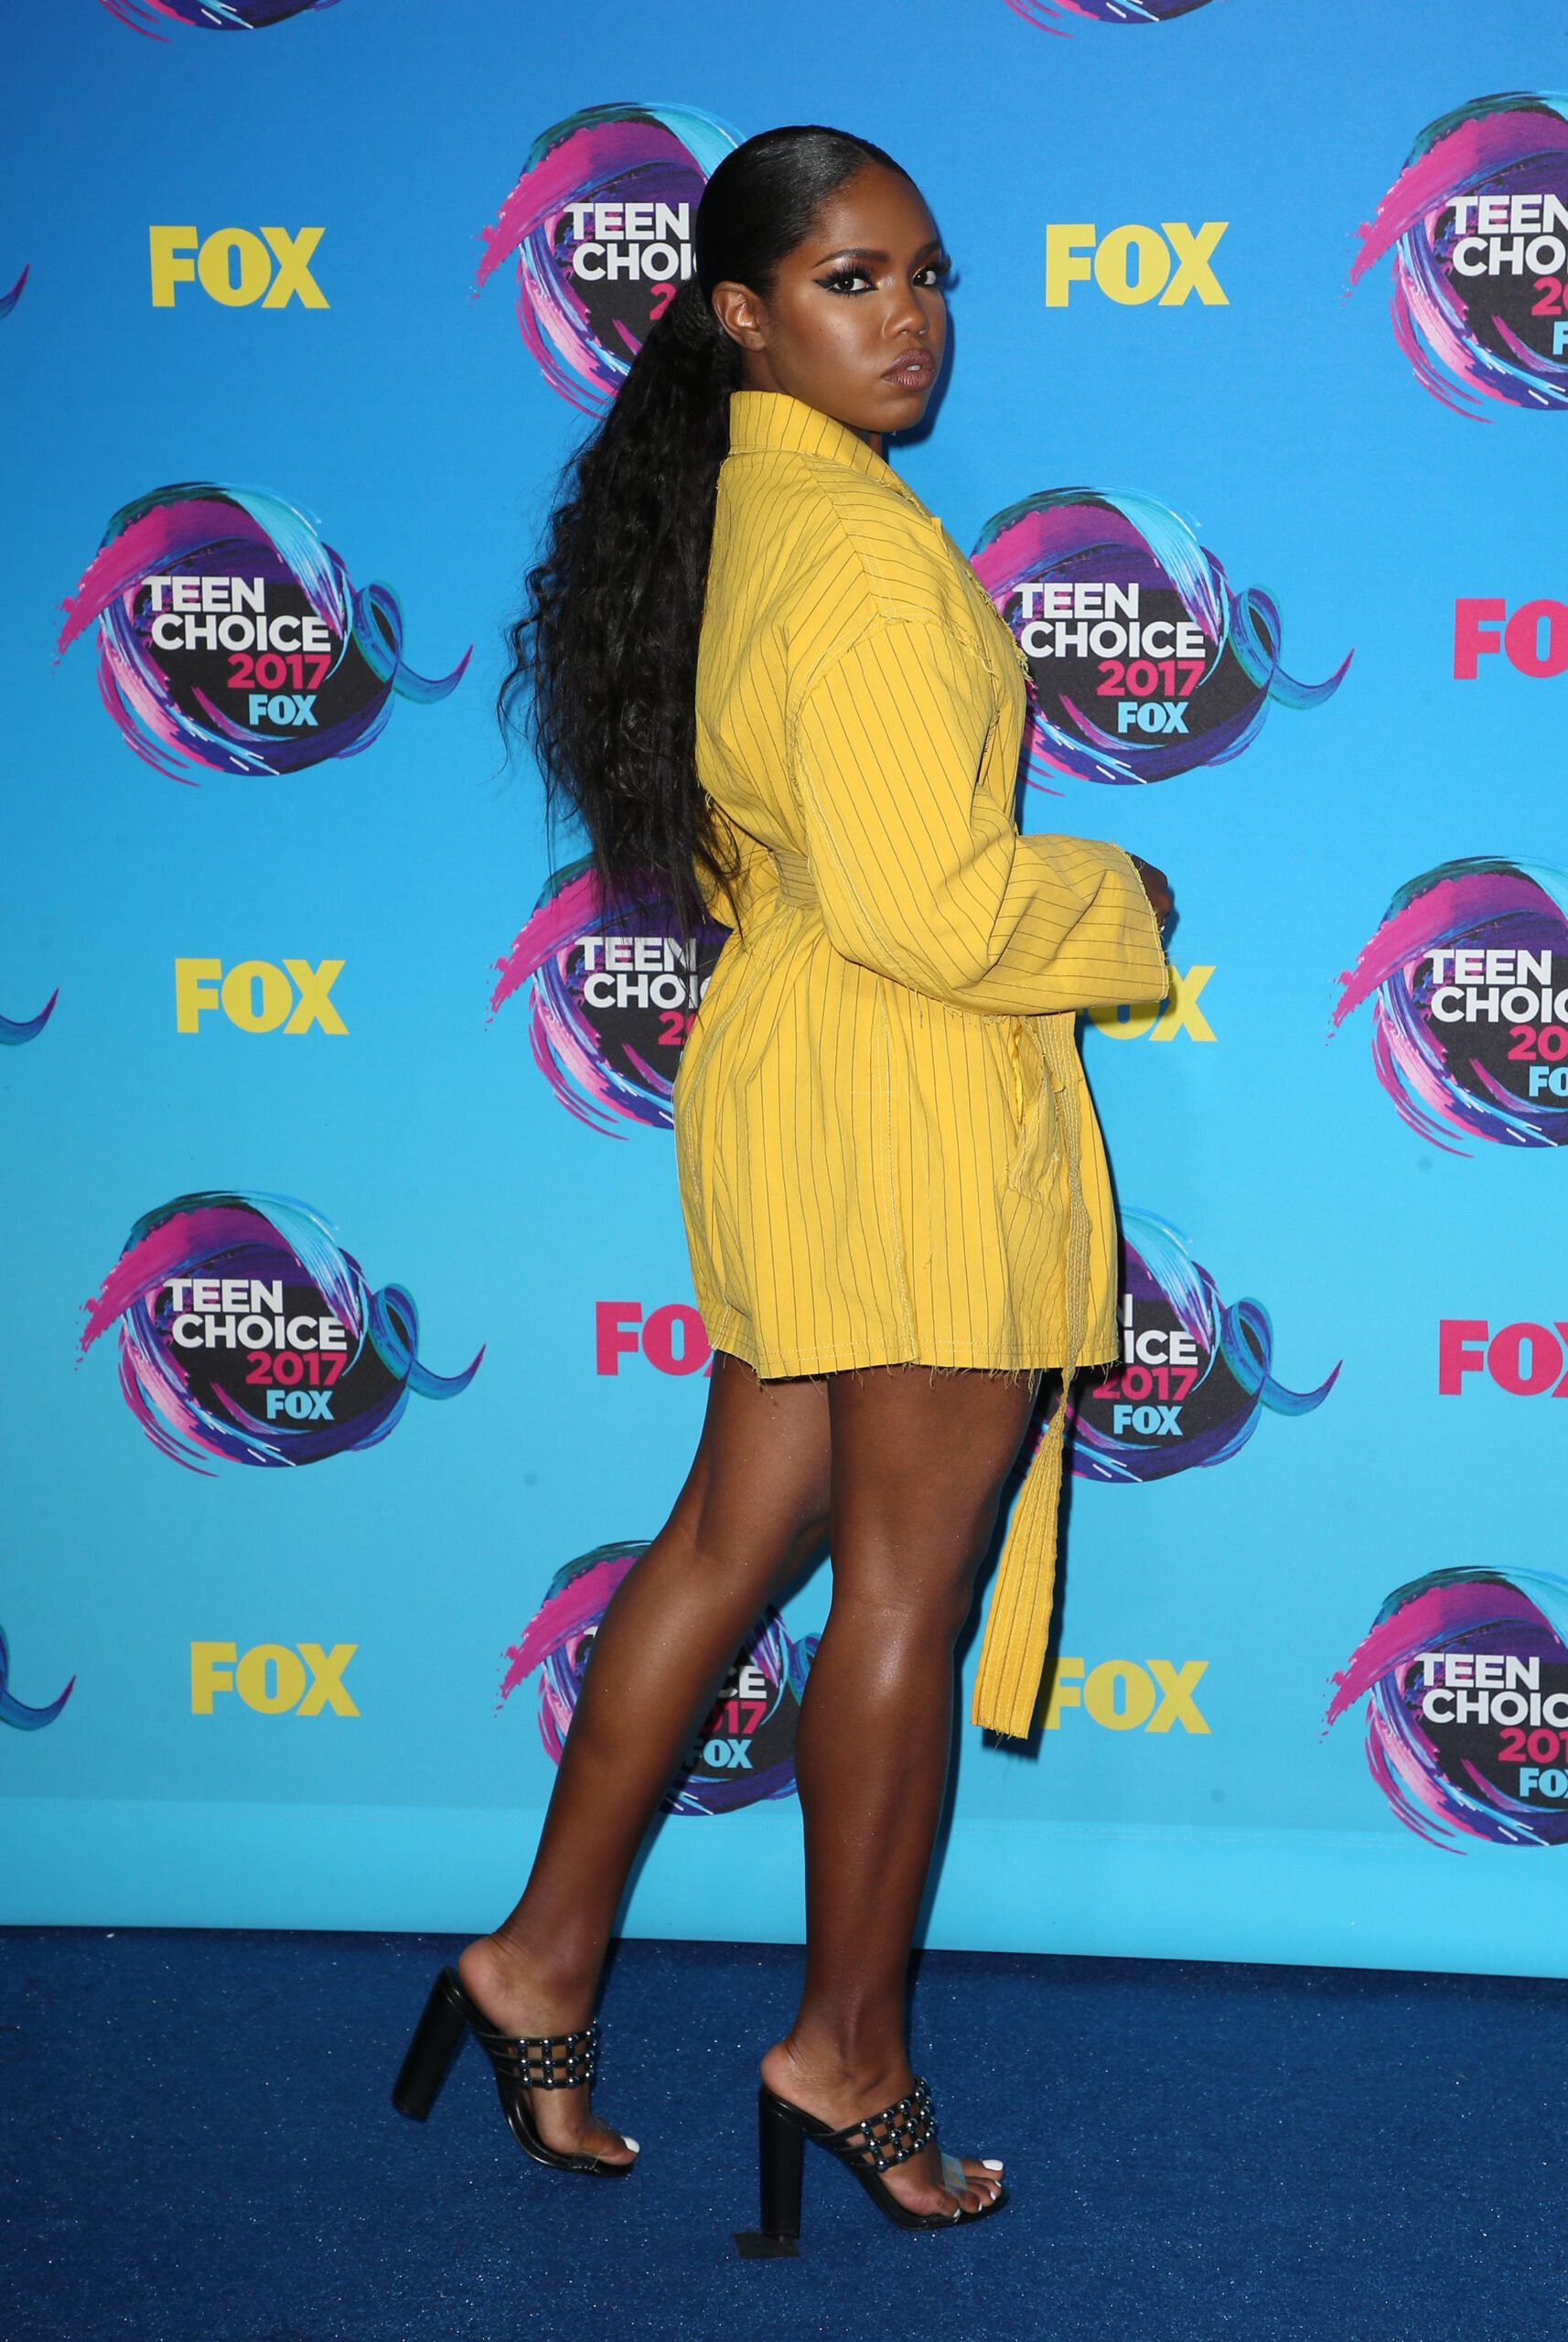 Teen choice outfit scaled